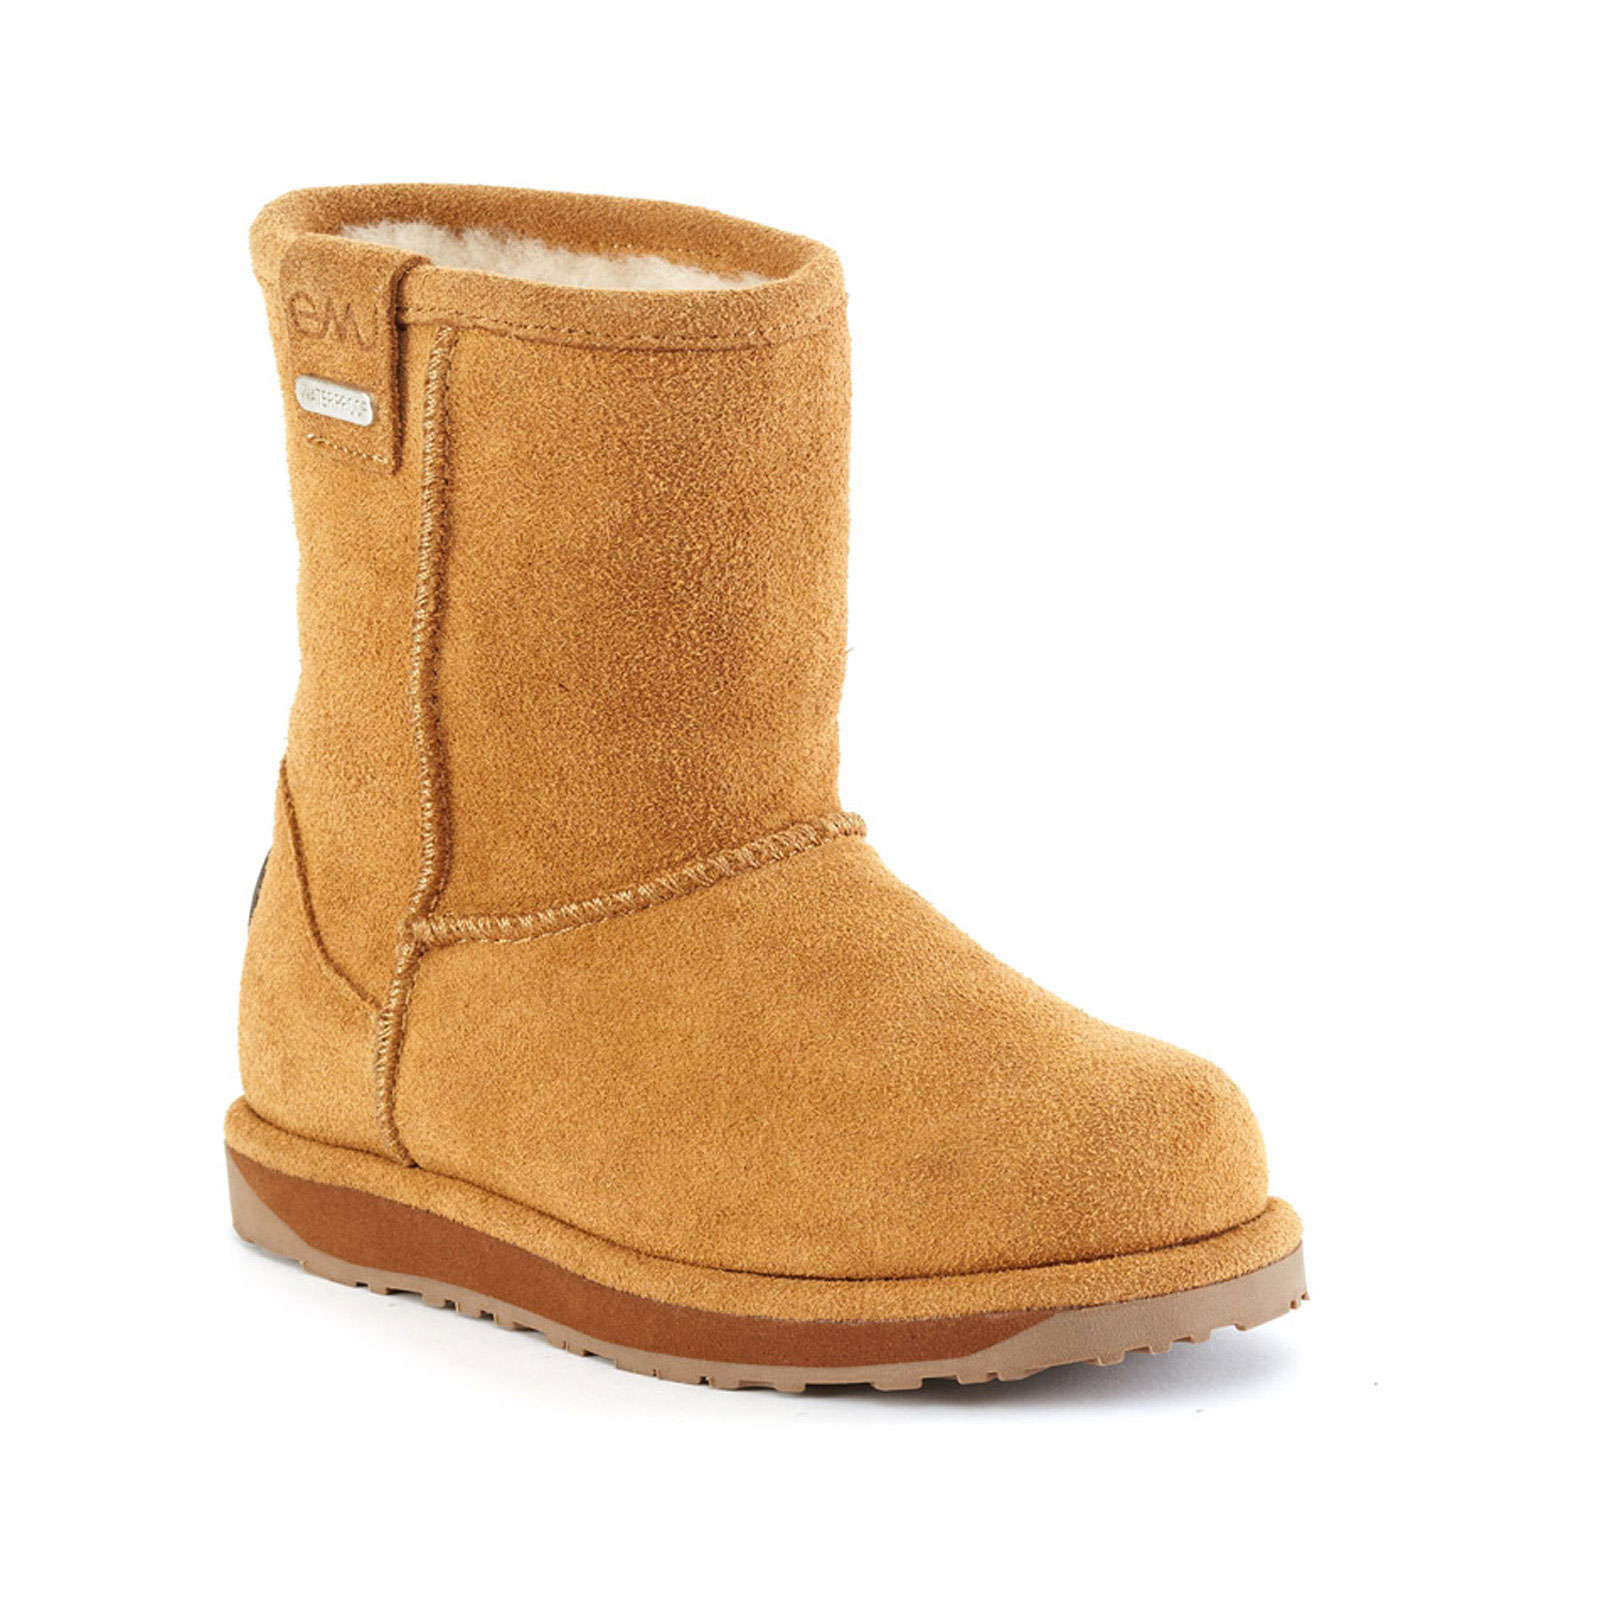 New EMU Womens Waterproof Shearling Sheepskin Snow Boots